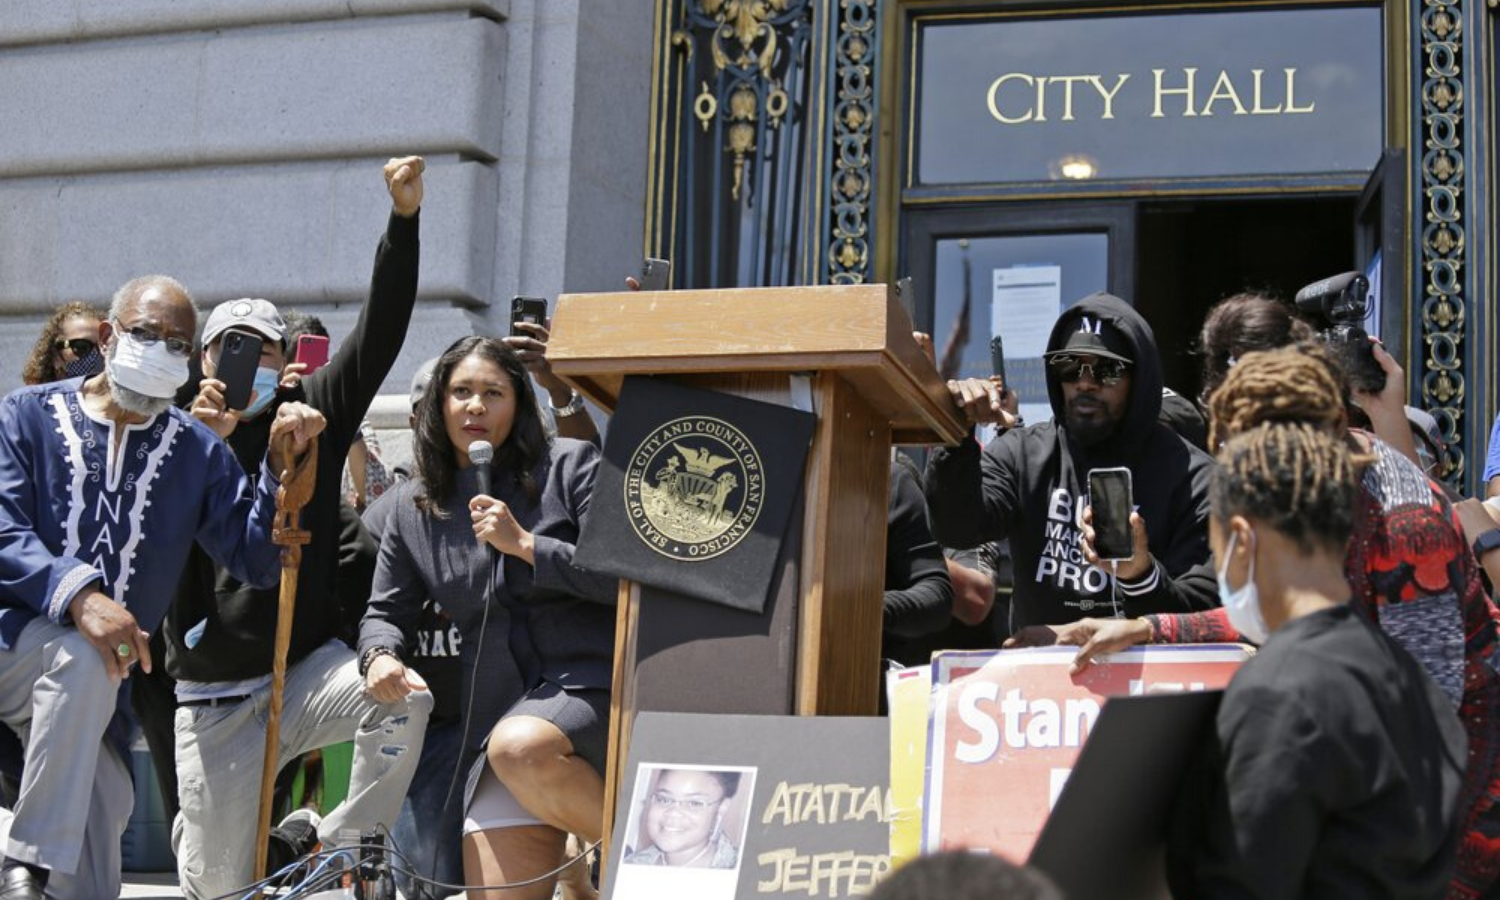 "Jamie Foxx, right of podium, and Mayor London Breed, left of podium, take part in a ""kneel-in"" to protest police racism on the steps of City Hall on Monday, June 1, 2020, in San Francisco. Hundreds watched the noontime demonstration. Photo by AP"